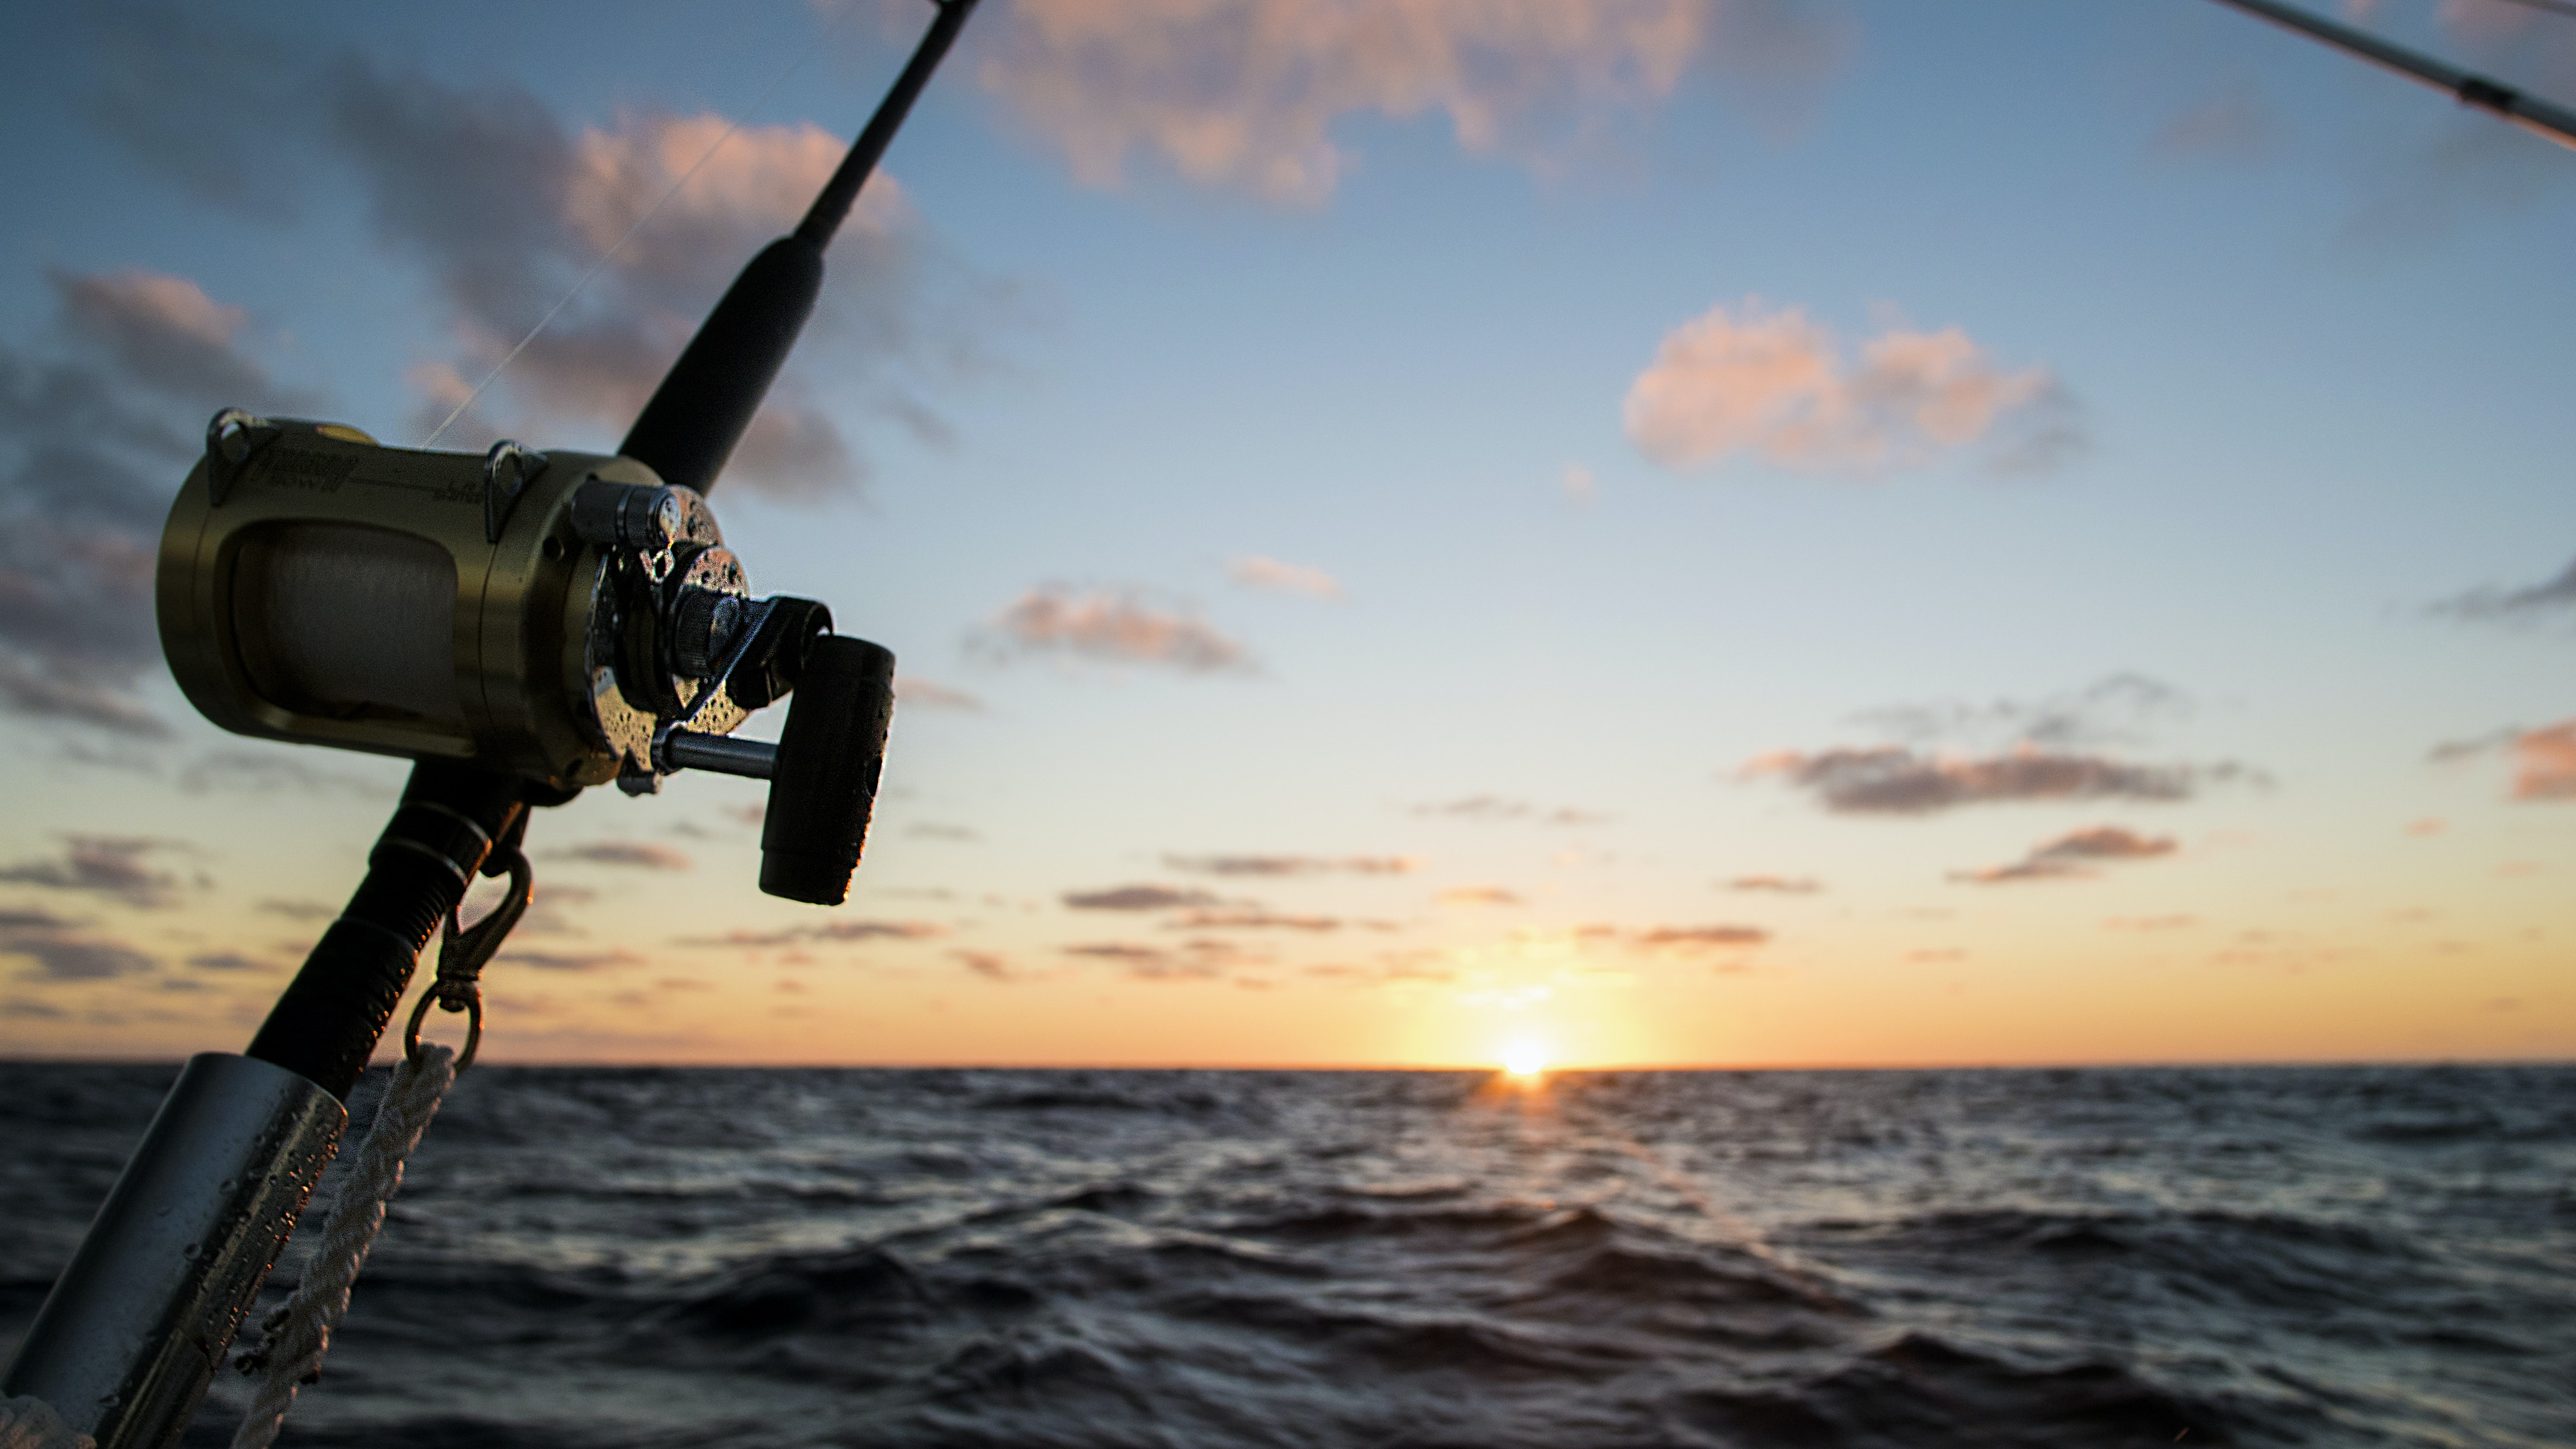 silhouette of fishing rod facing sunset